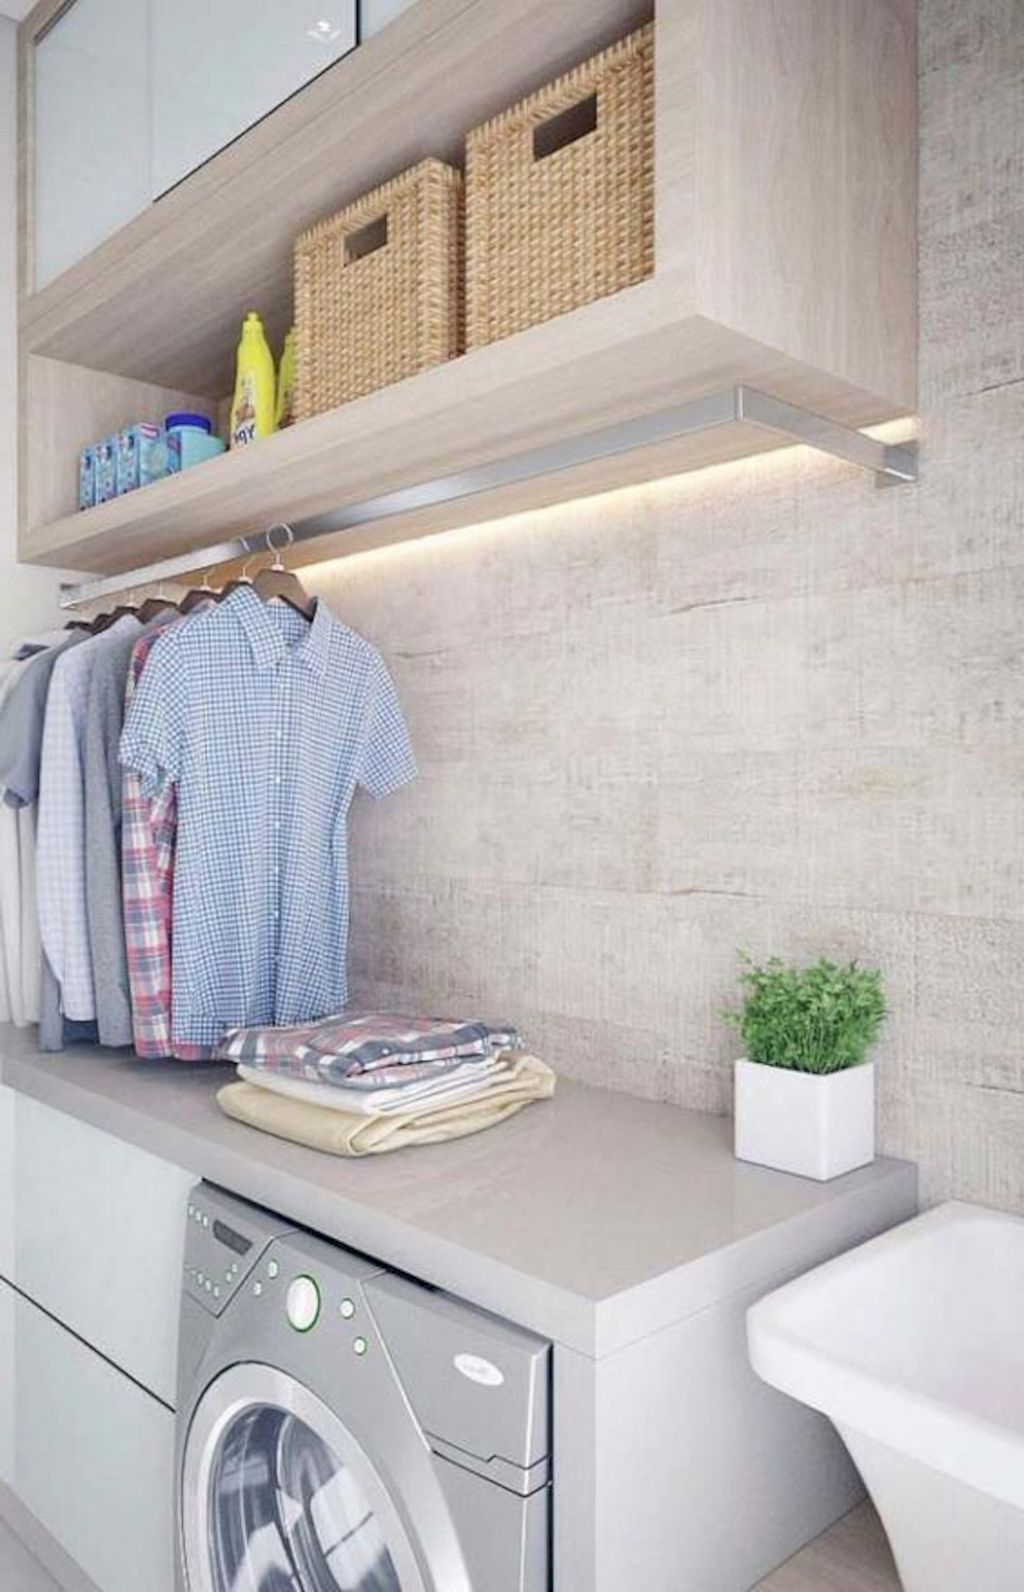 Classy Laundry Room Update Showing Off Minimalist Modern